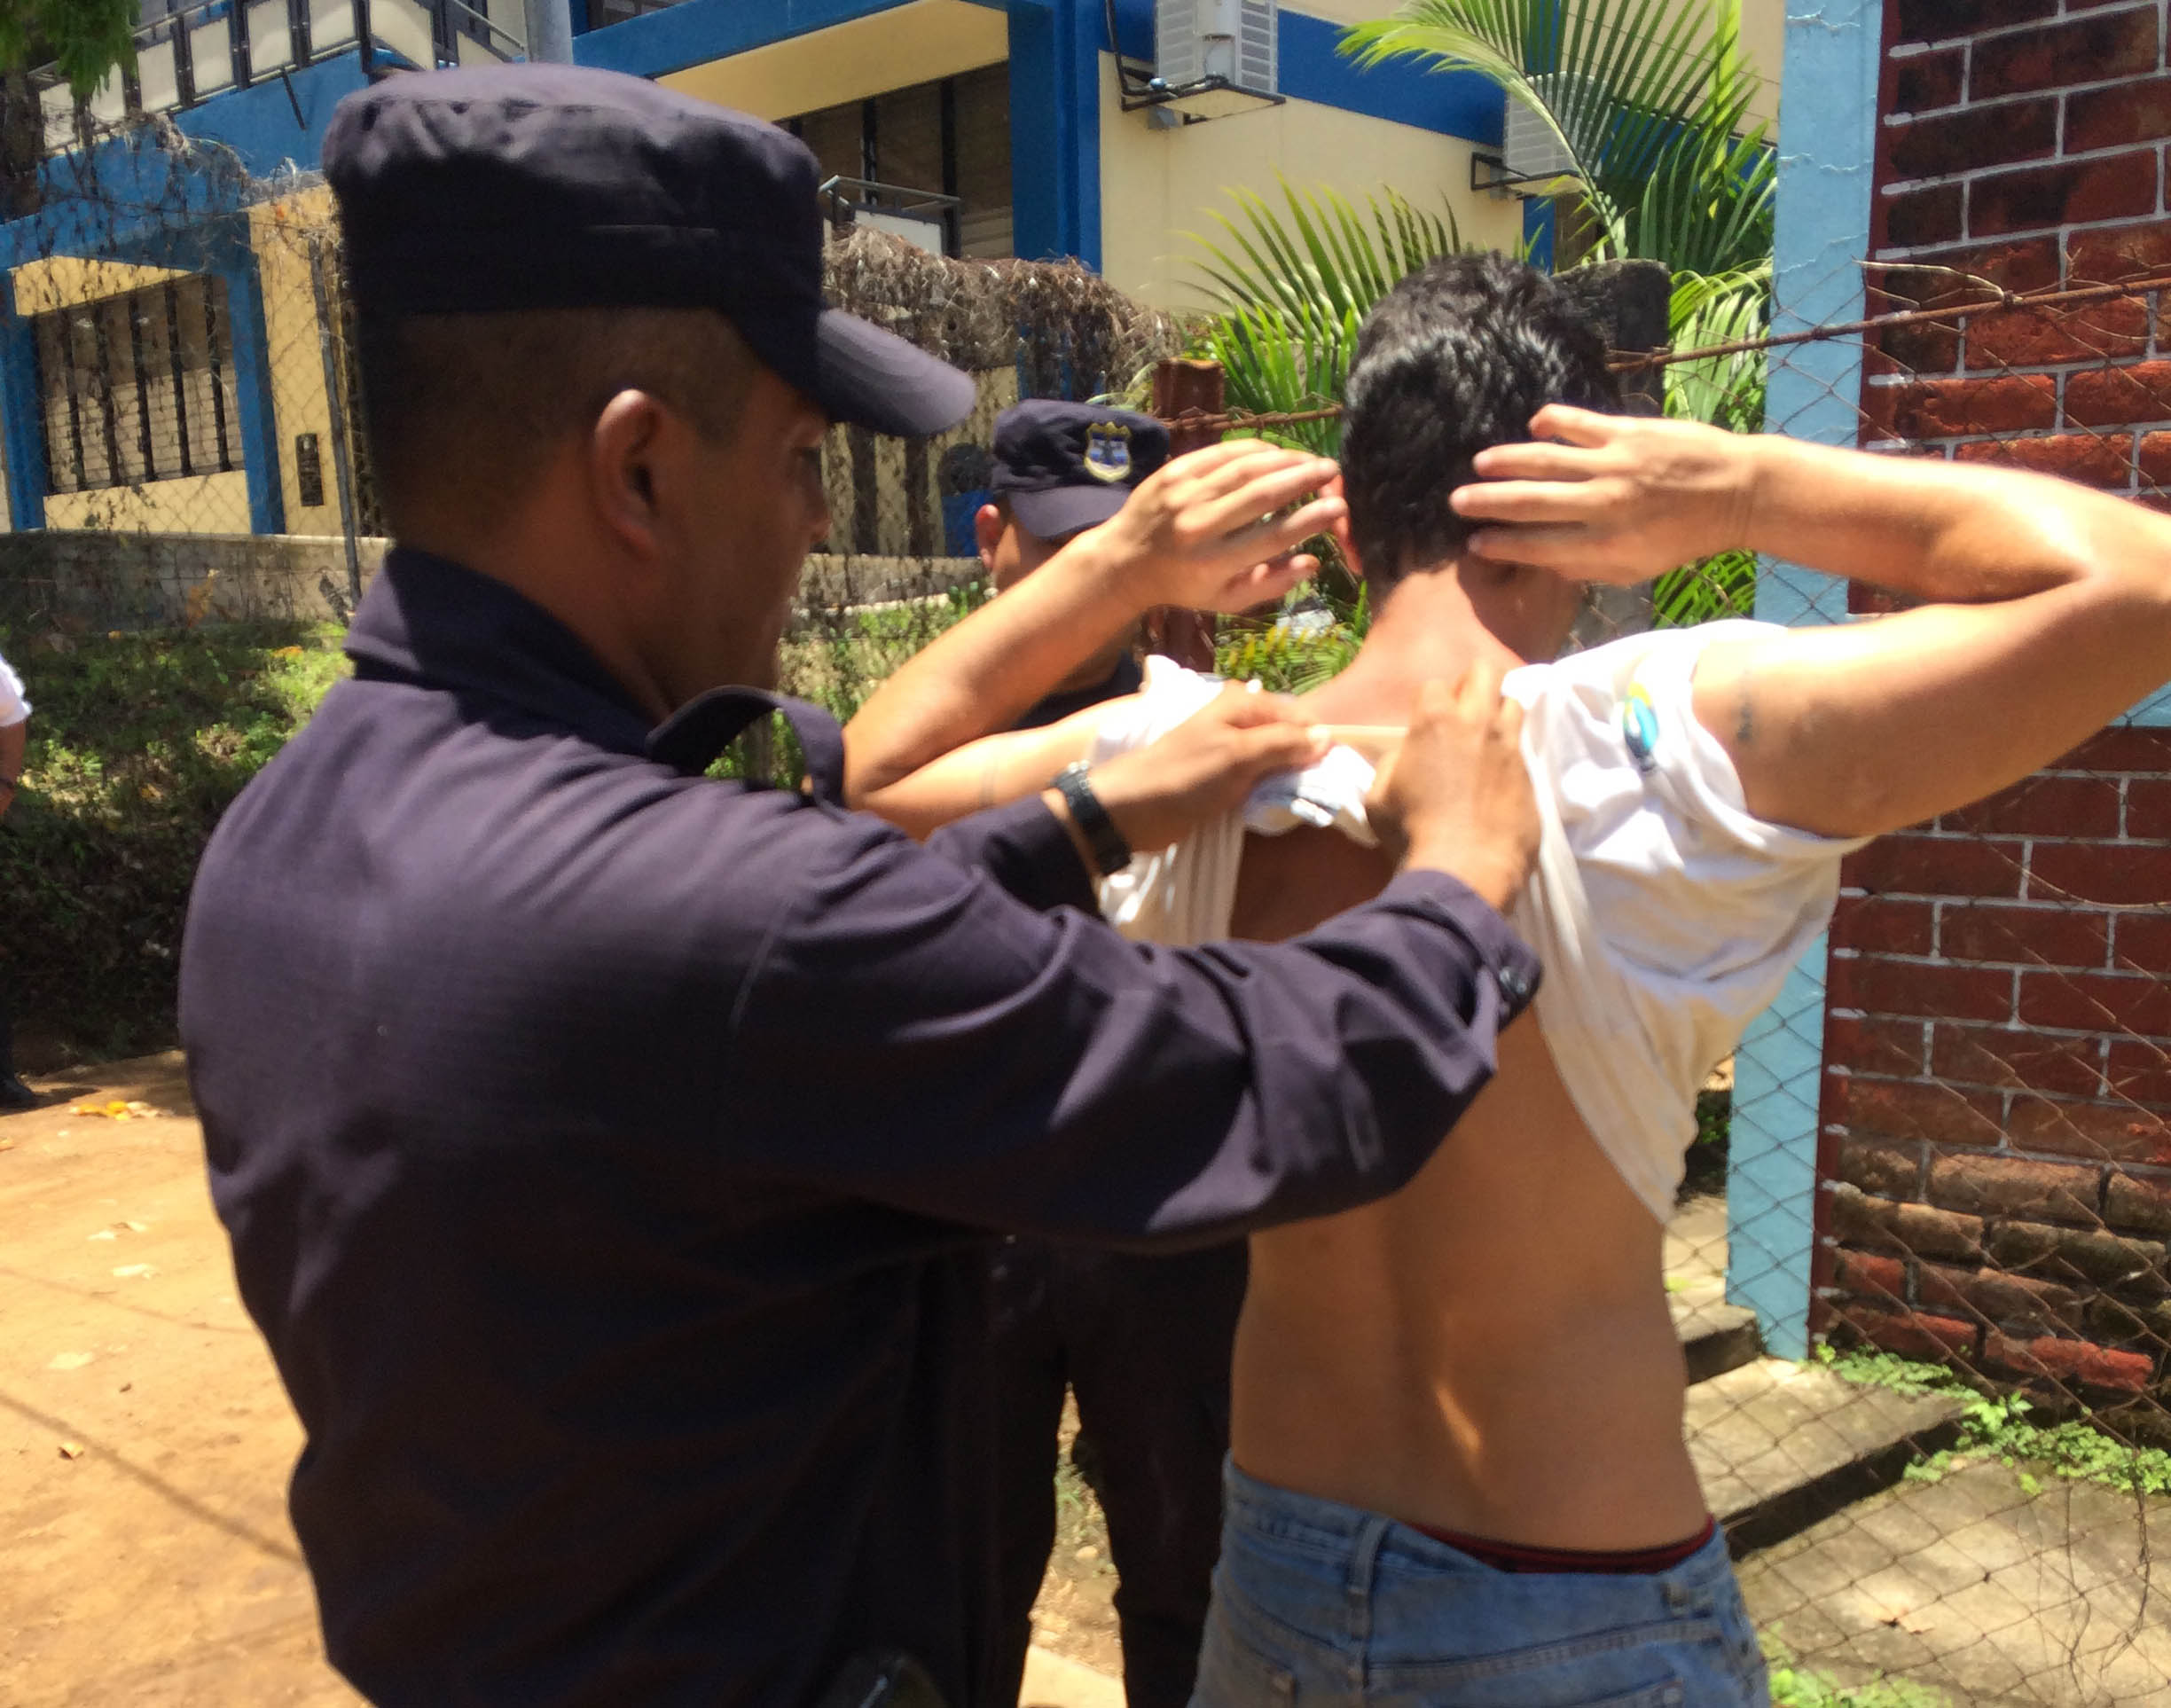 El Salvador Tries To Rein In Crime With Community Policing